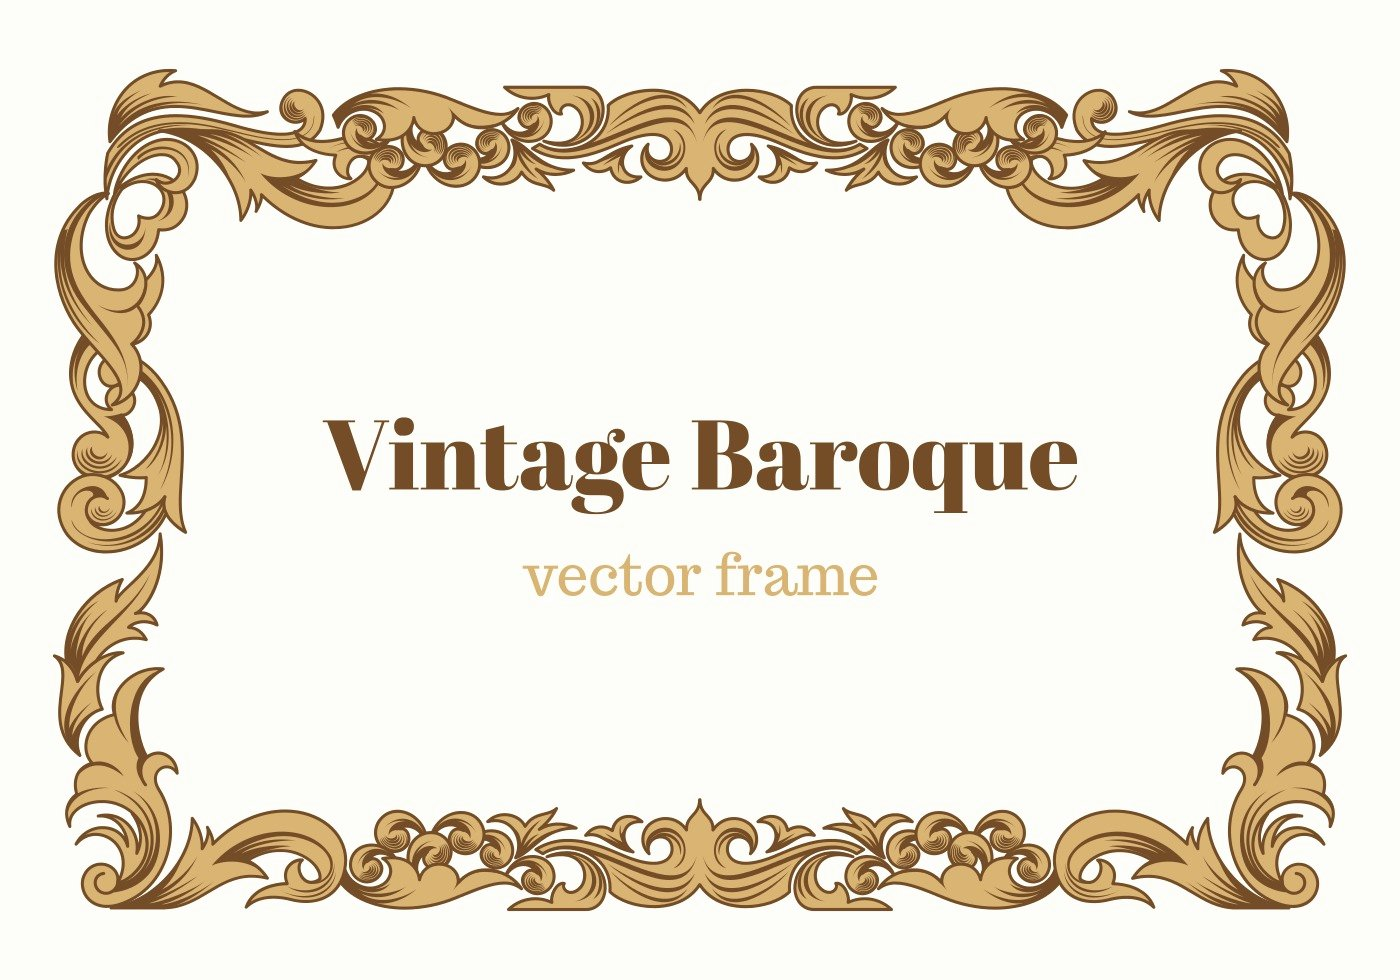 Picture Frame Vector Best Of Vintage Baroque Vector Frame Download Free Vector Art